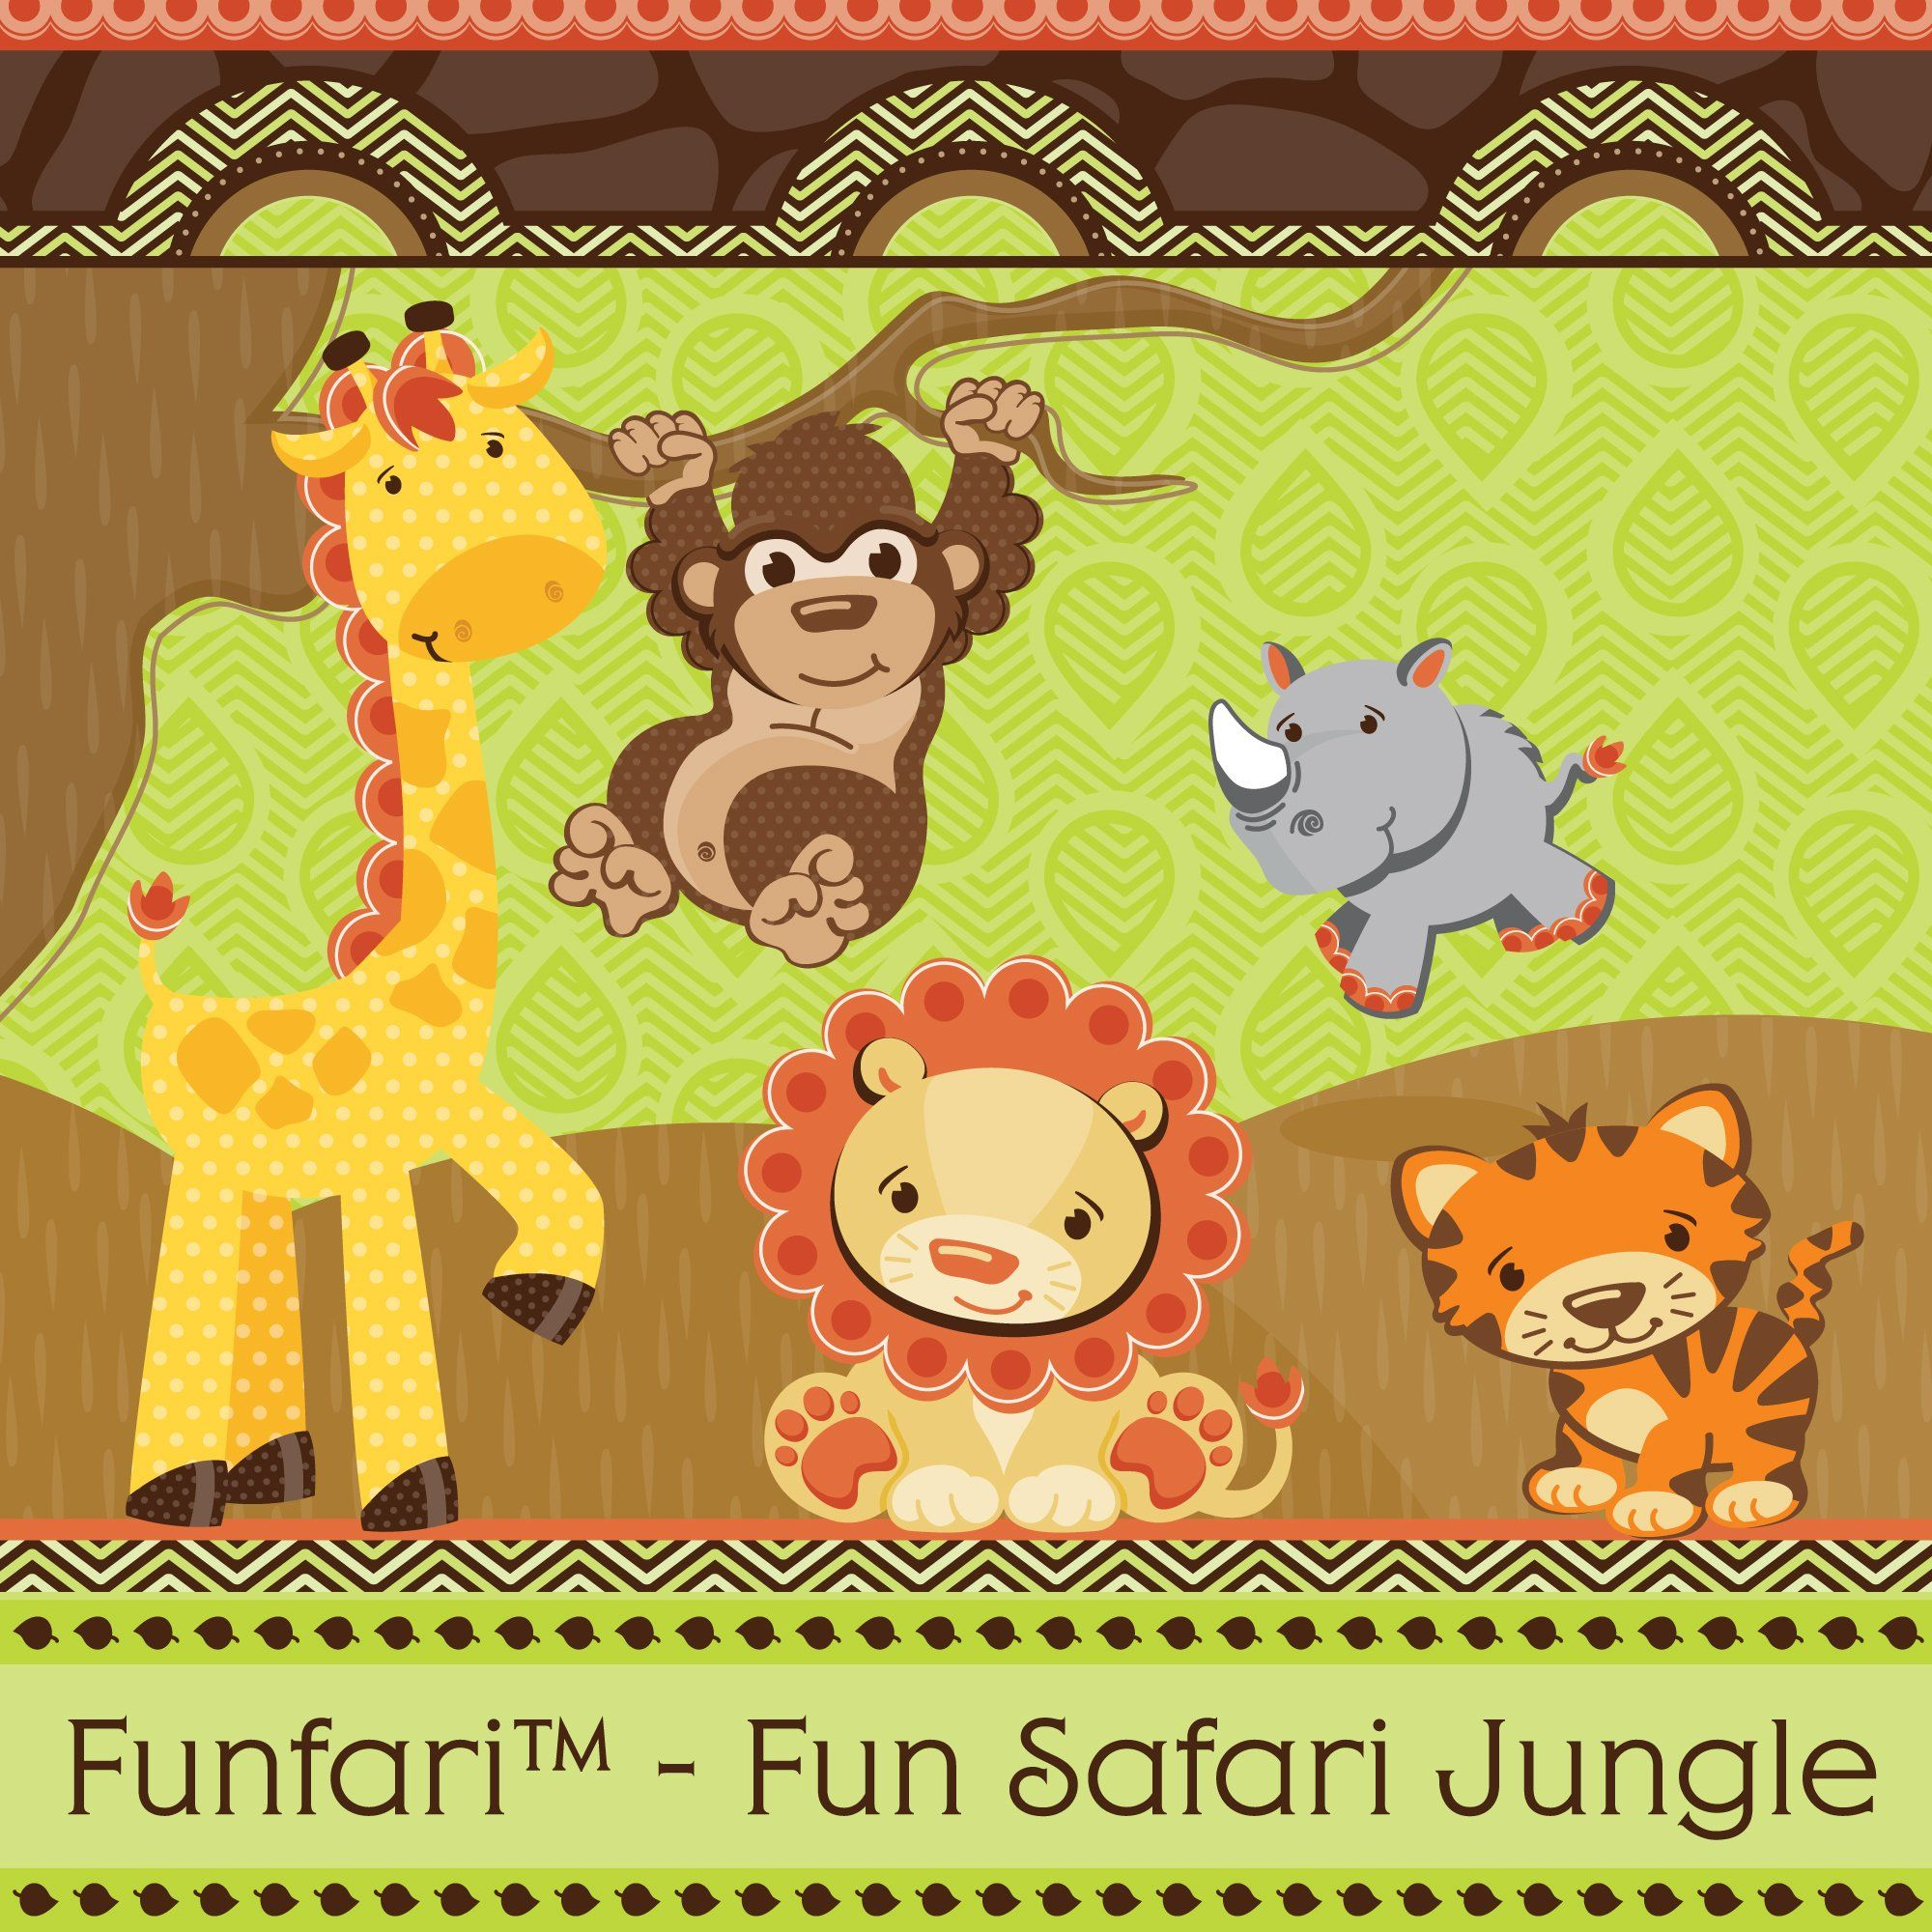 party shower bridal cakes safari animals clipart boy signs deco games ideas price jungle invitations baby